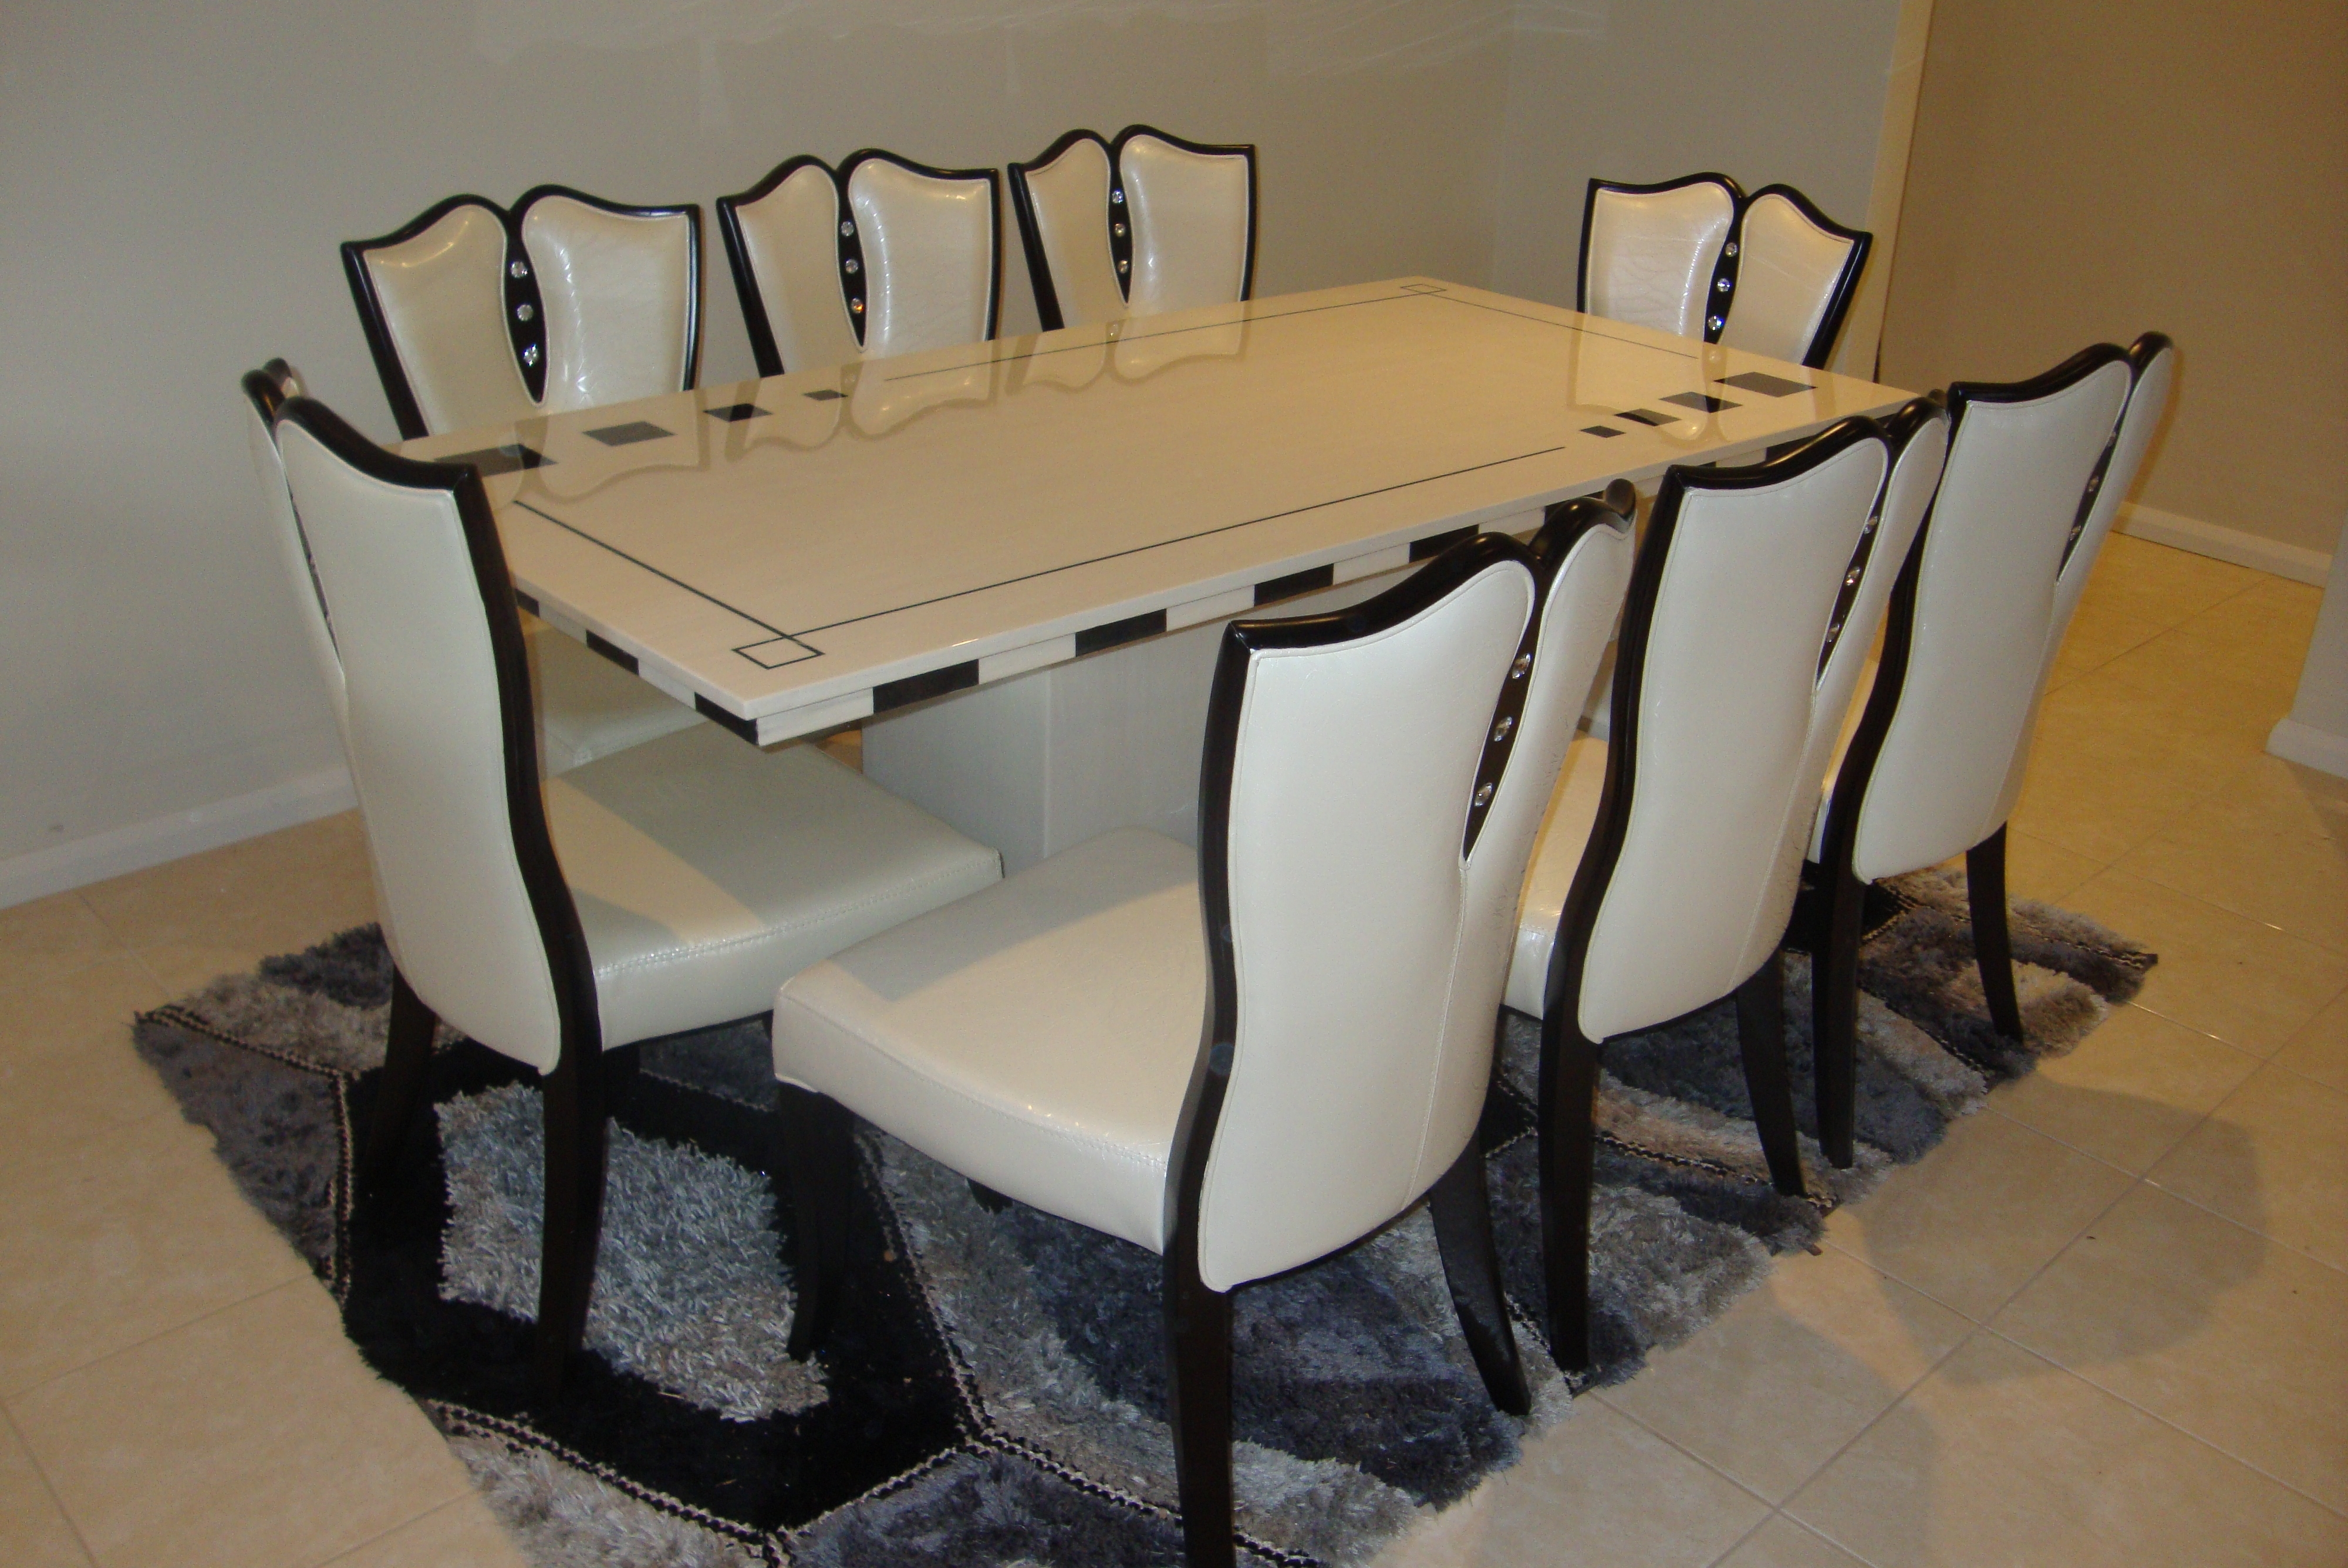 Dining Tables And 8 Chairs For Sale With Latest 26 Dining Table Set For 8, Marina Marble Dining Table With 8 Chairs (Gallery 6 of 25)